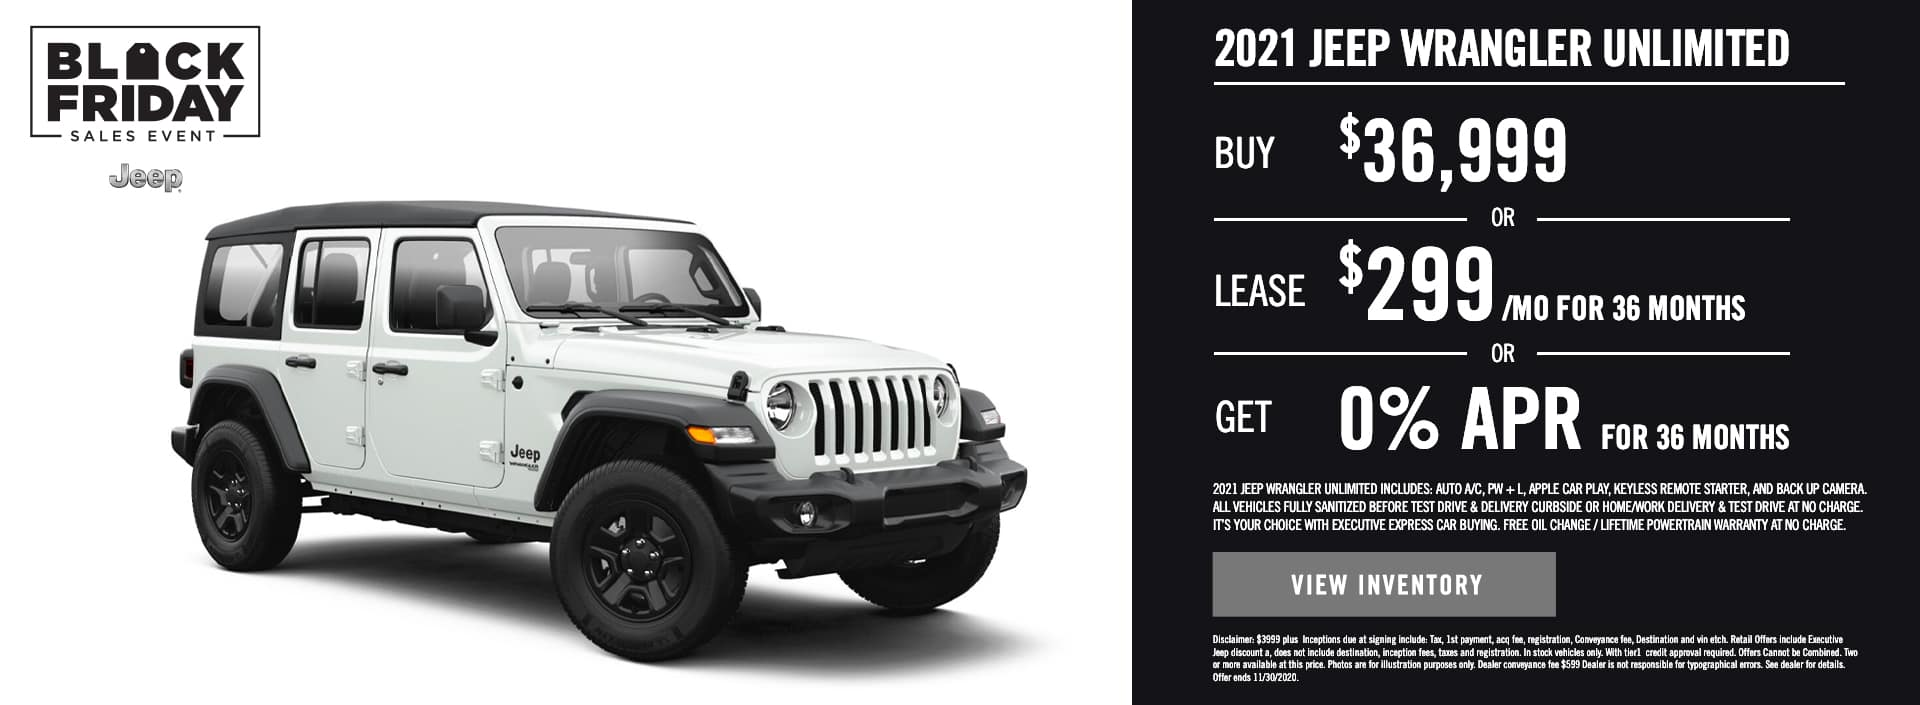 2021 Jeep Wrangler Unlimited (1)